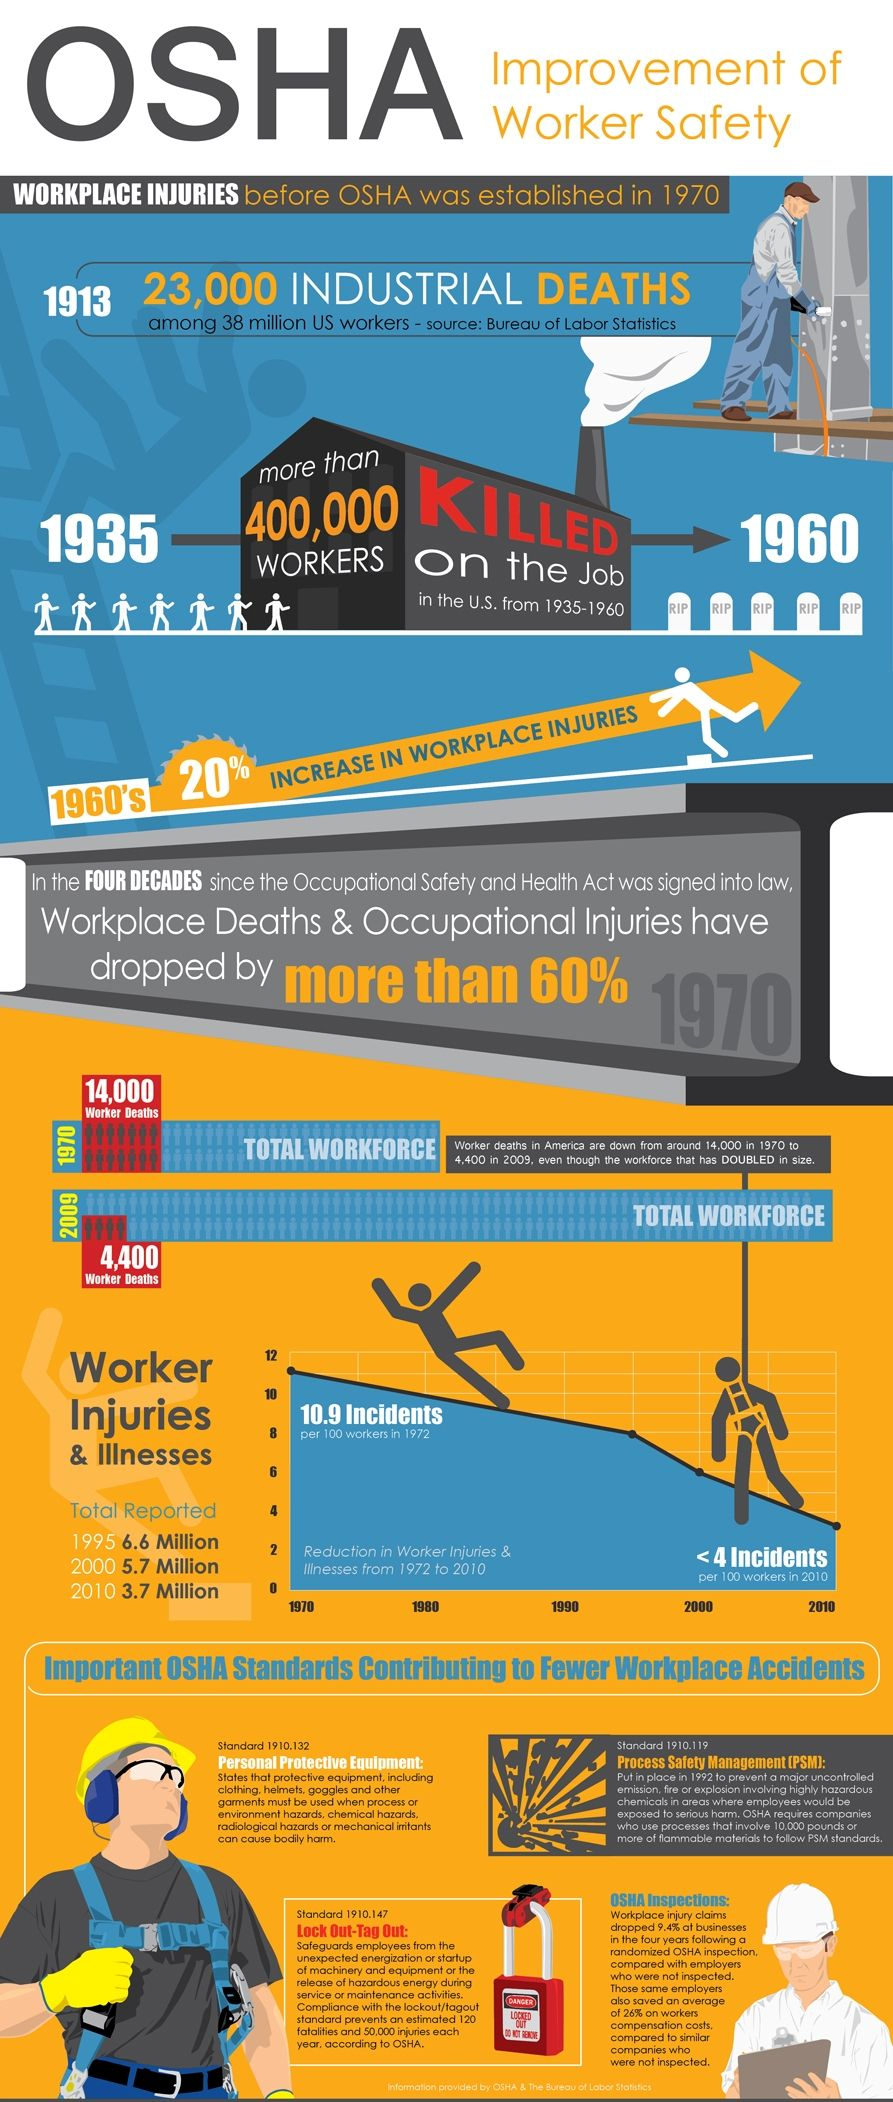 The Impact of Safety at Work This infographic shows how